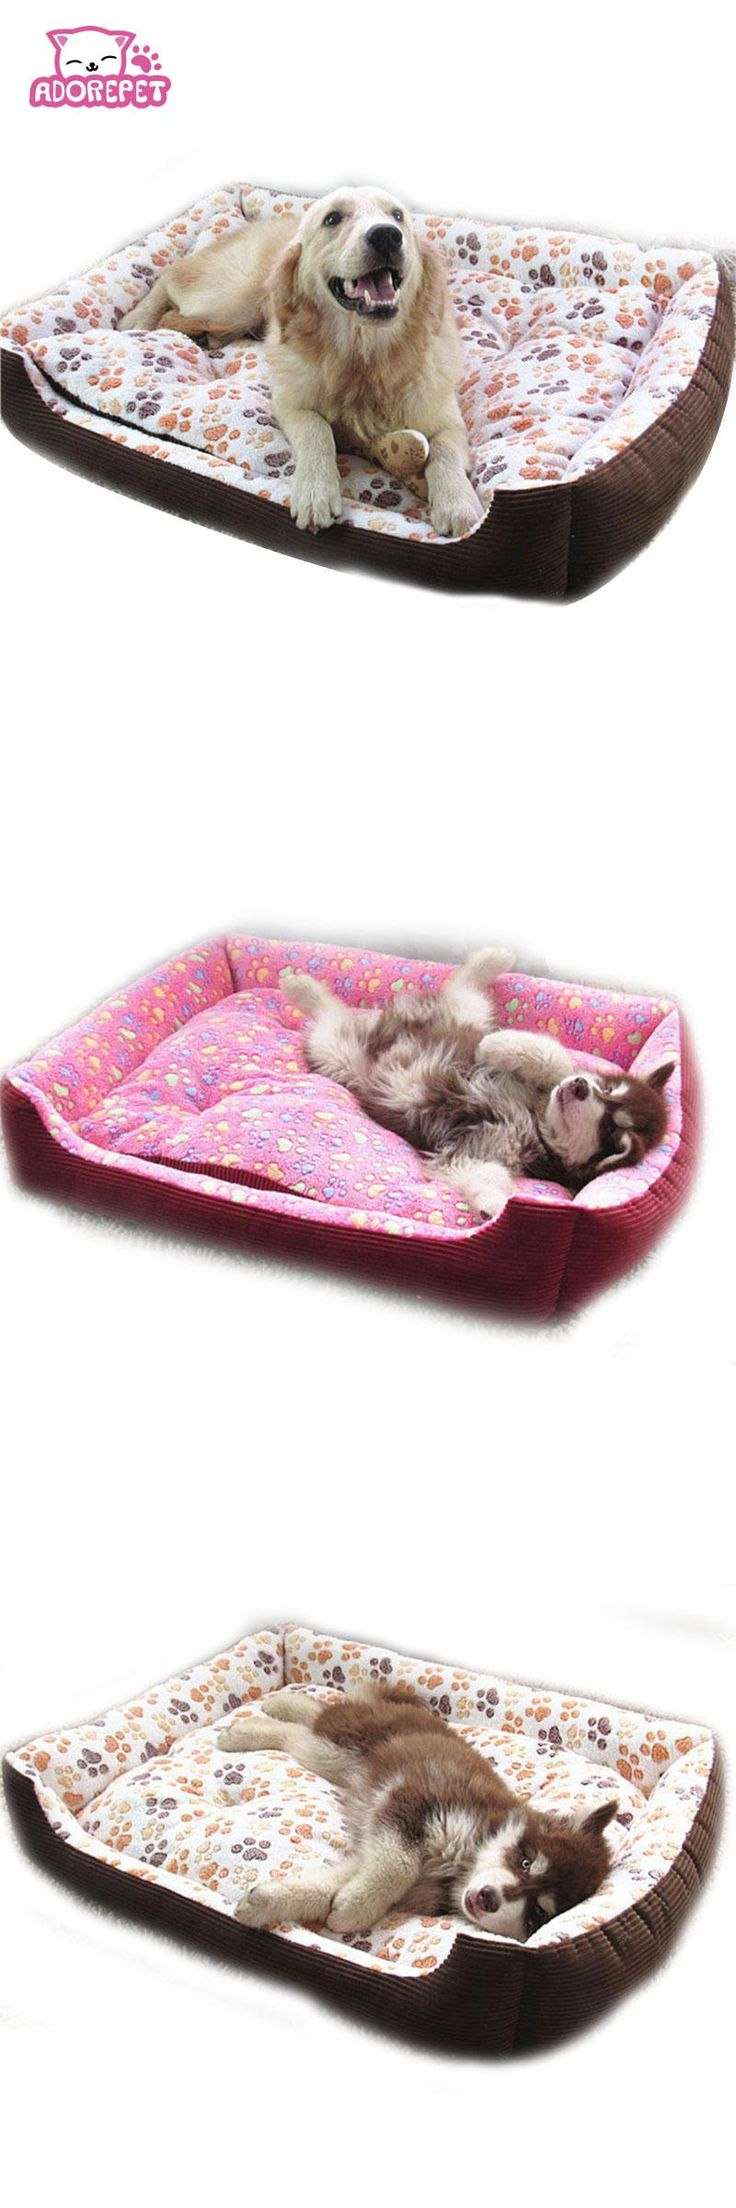 [Visit to Buy] Small big large dog sofa bed House Kennel winter warm fleece Pet Dog Cat Bed nest mat cushion golden retriever pitbull dog bed #Advertisement